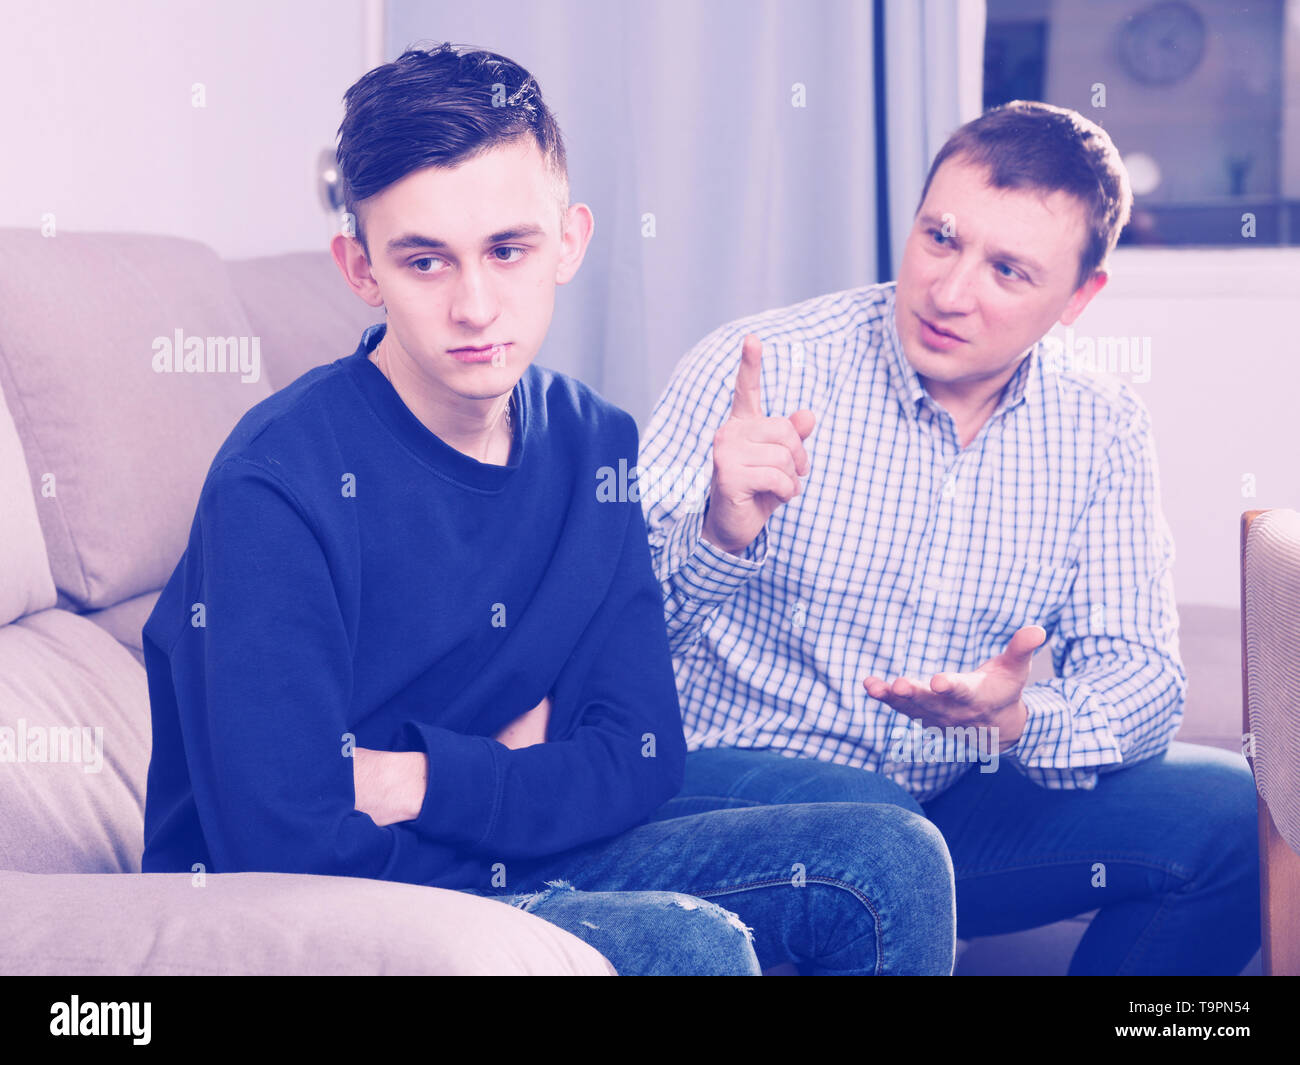 Father is wanting talking with his adult son after conflict at the home. Stock Photo